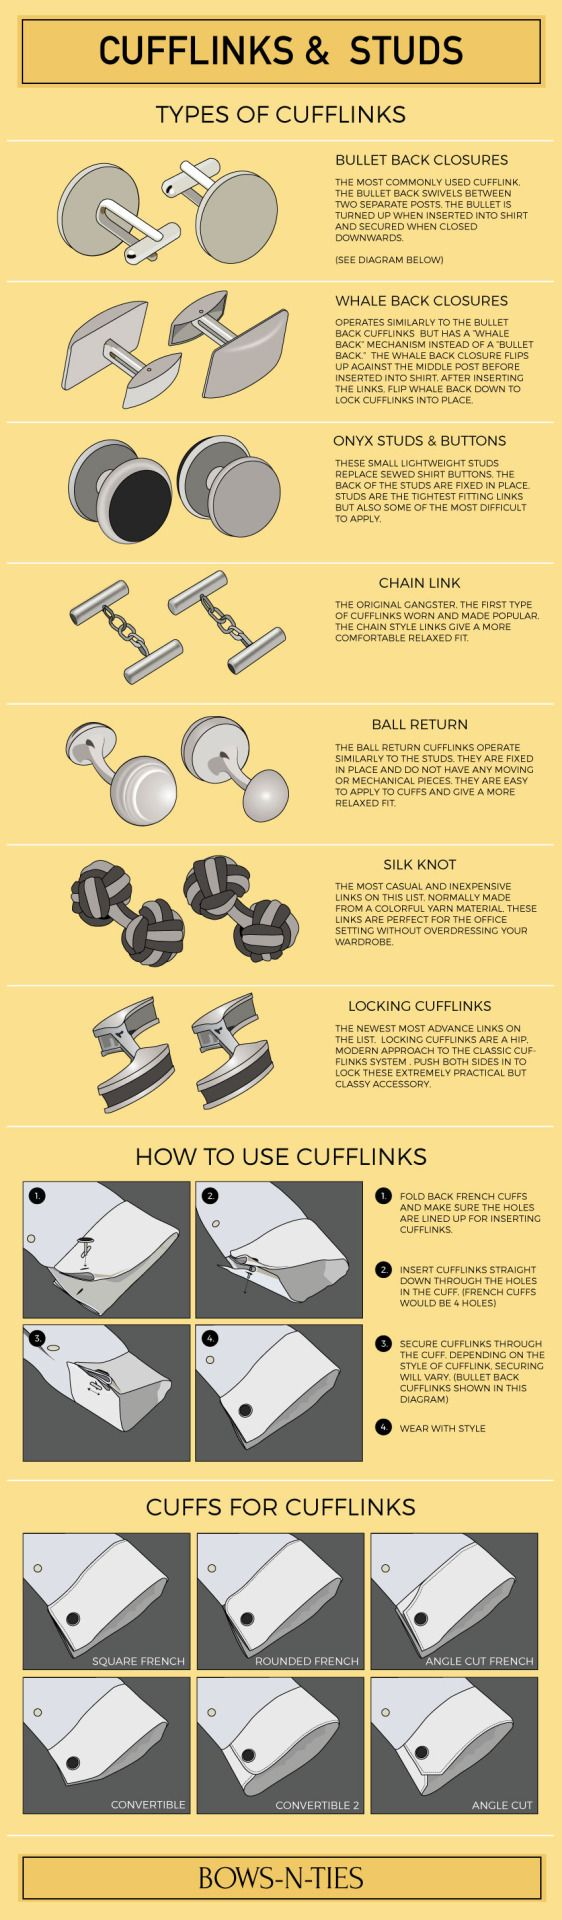 bows-n-ties:  Cufflinks & Bars Infographic | Everything you need to know…